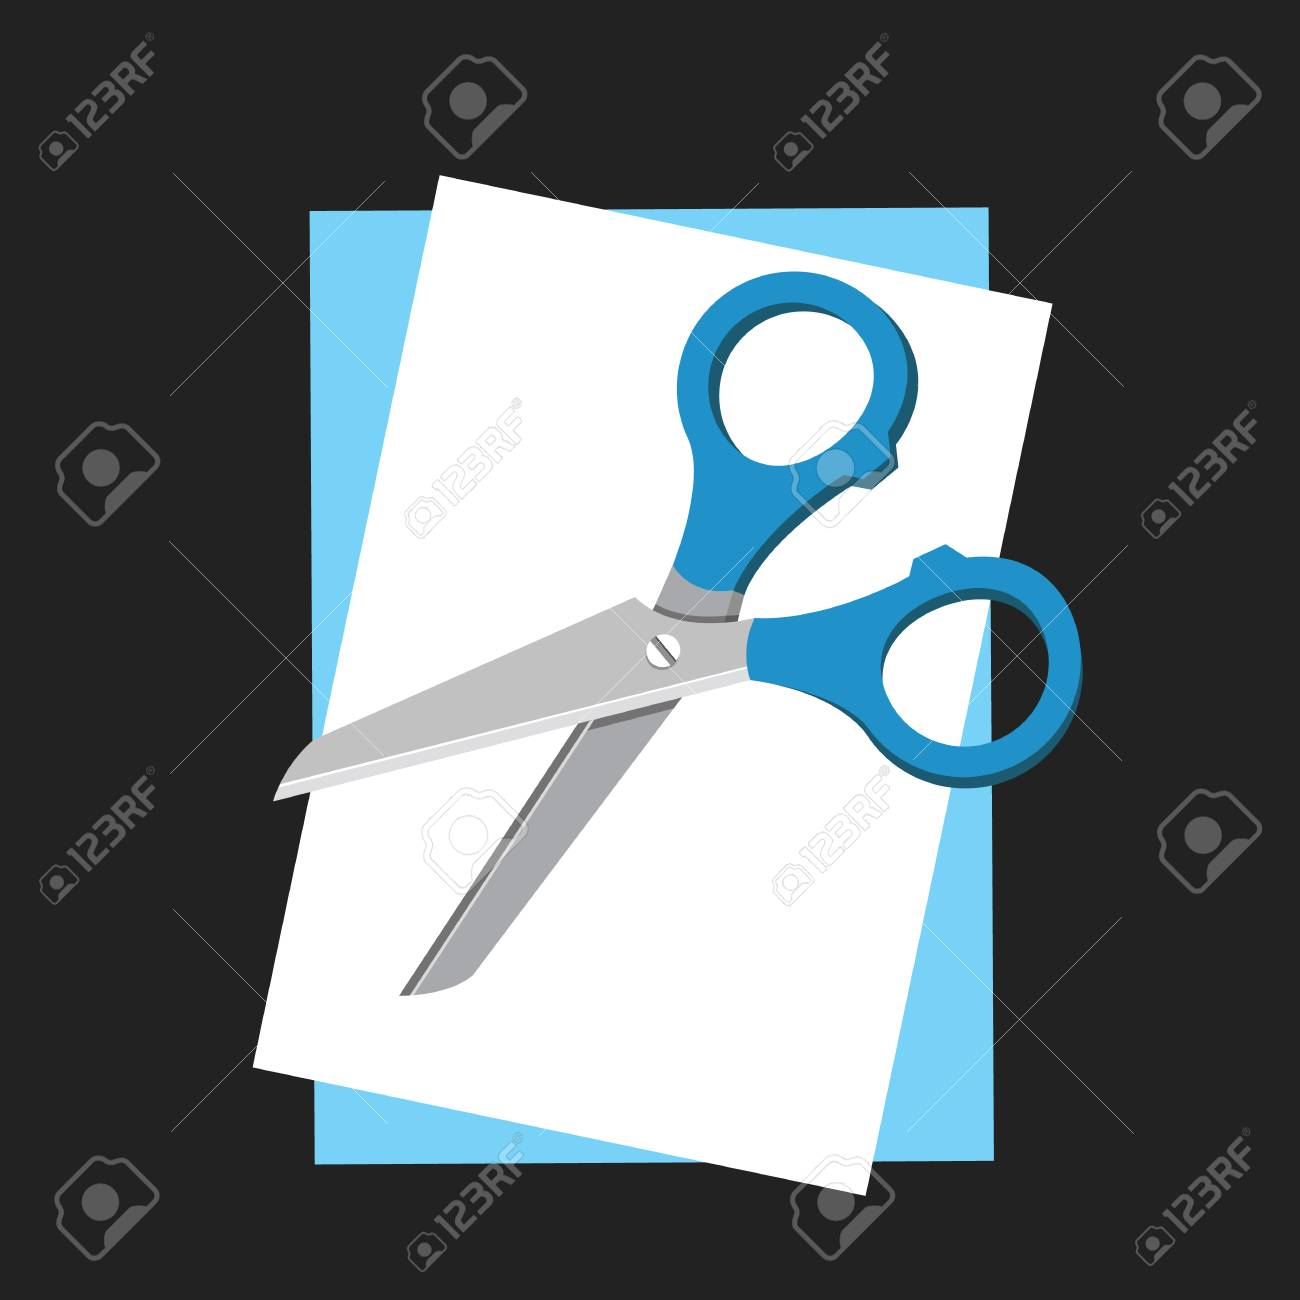 ector Sheets of Paper with Scissors Stock Vector - 22546002